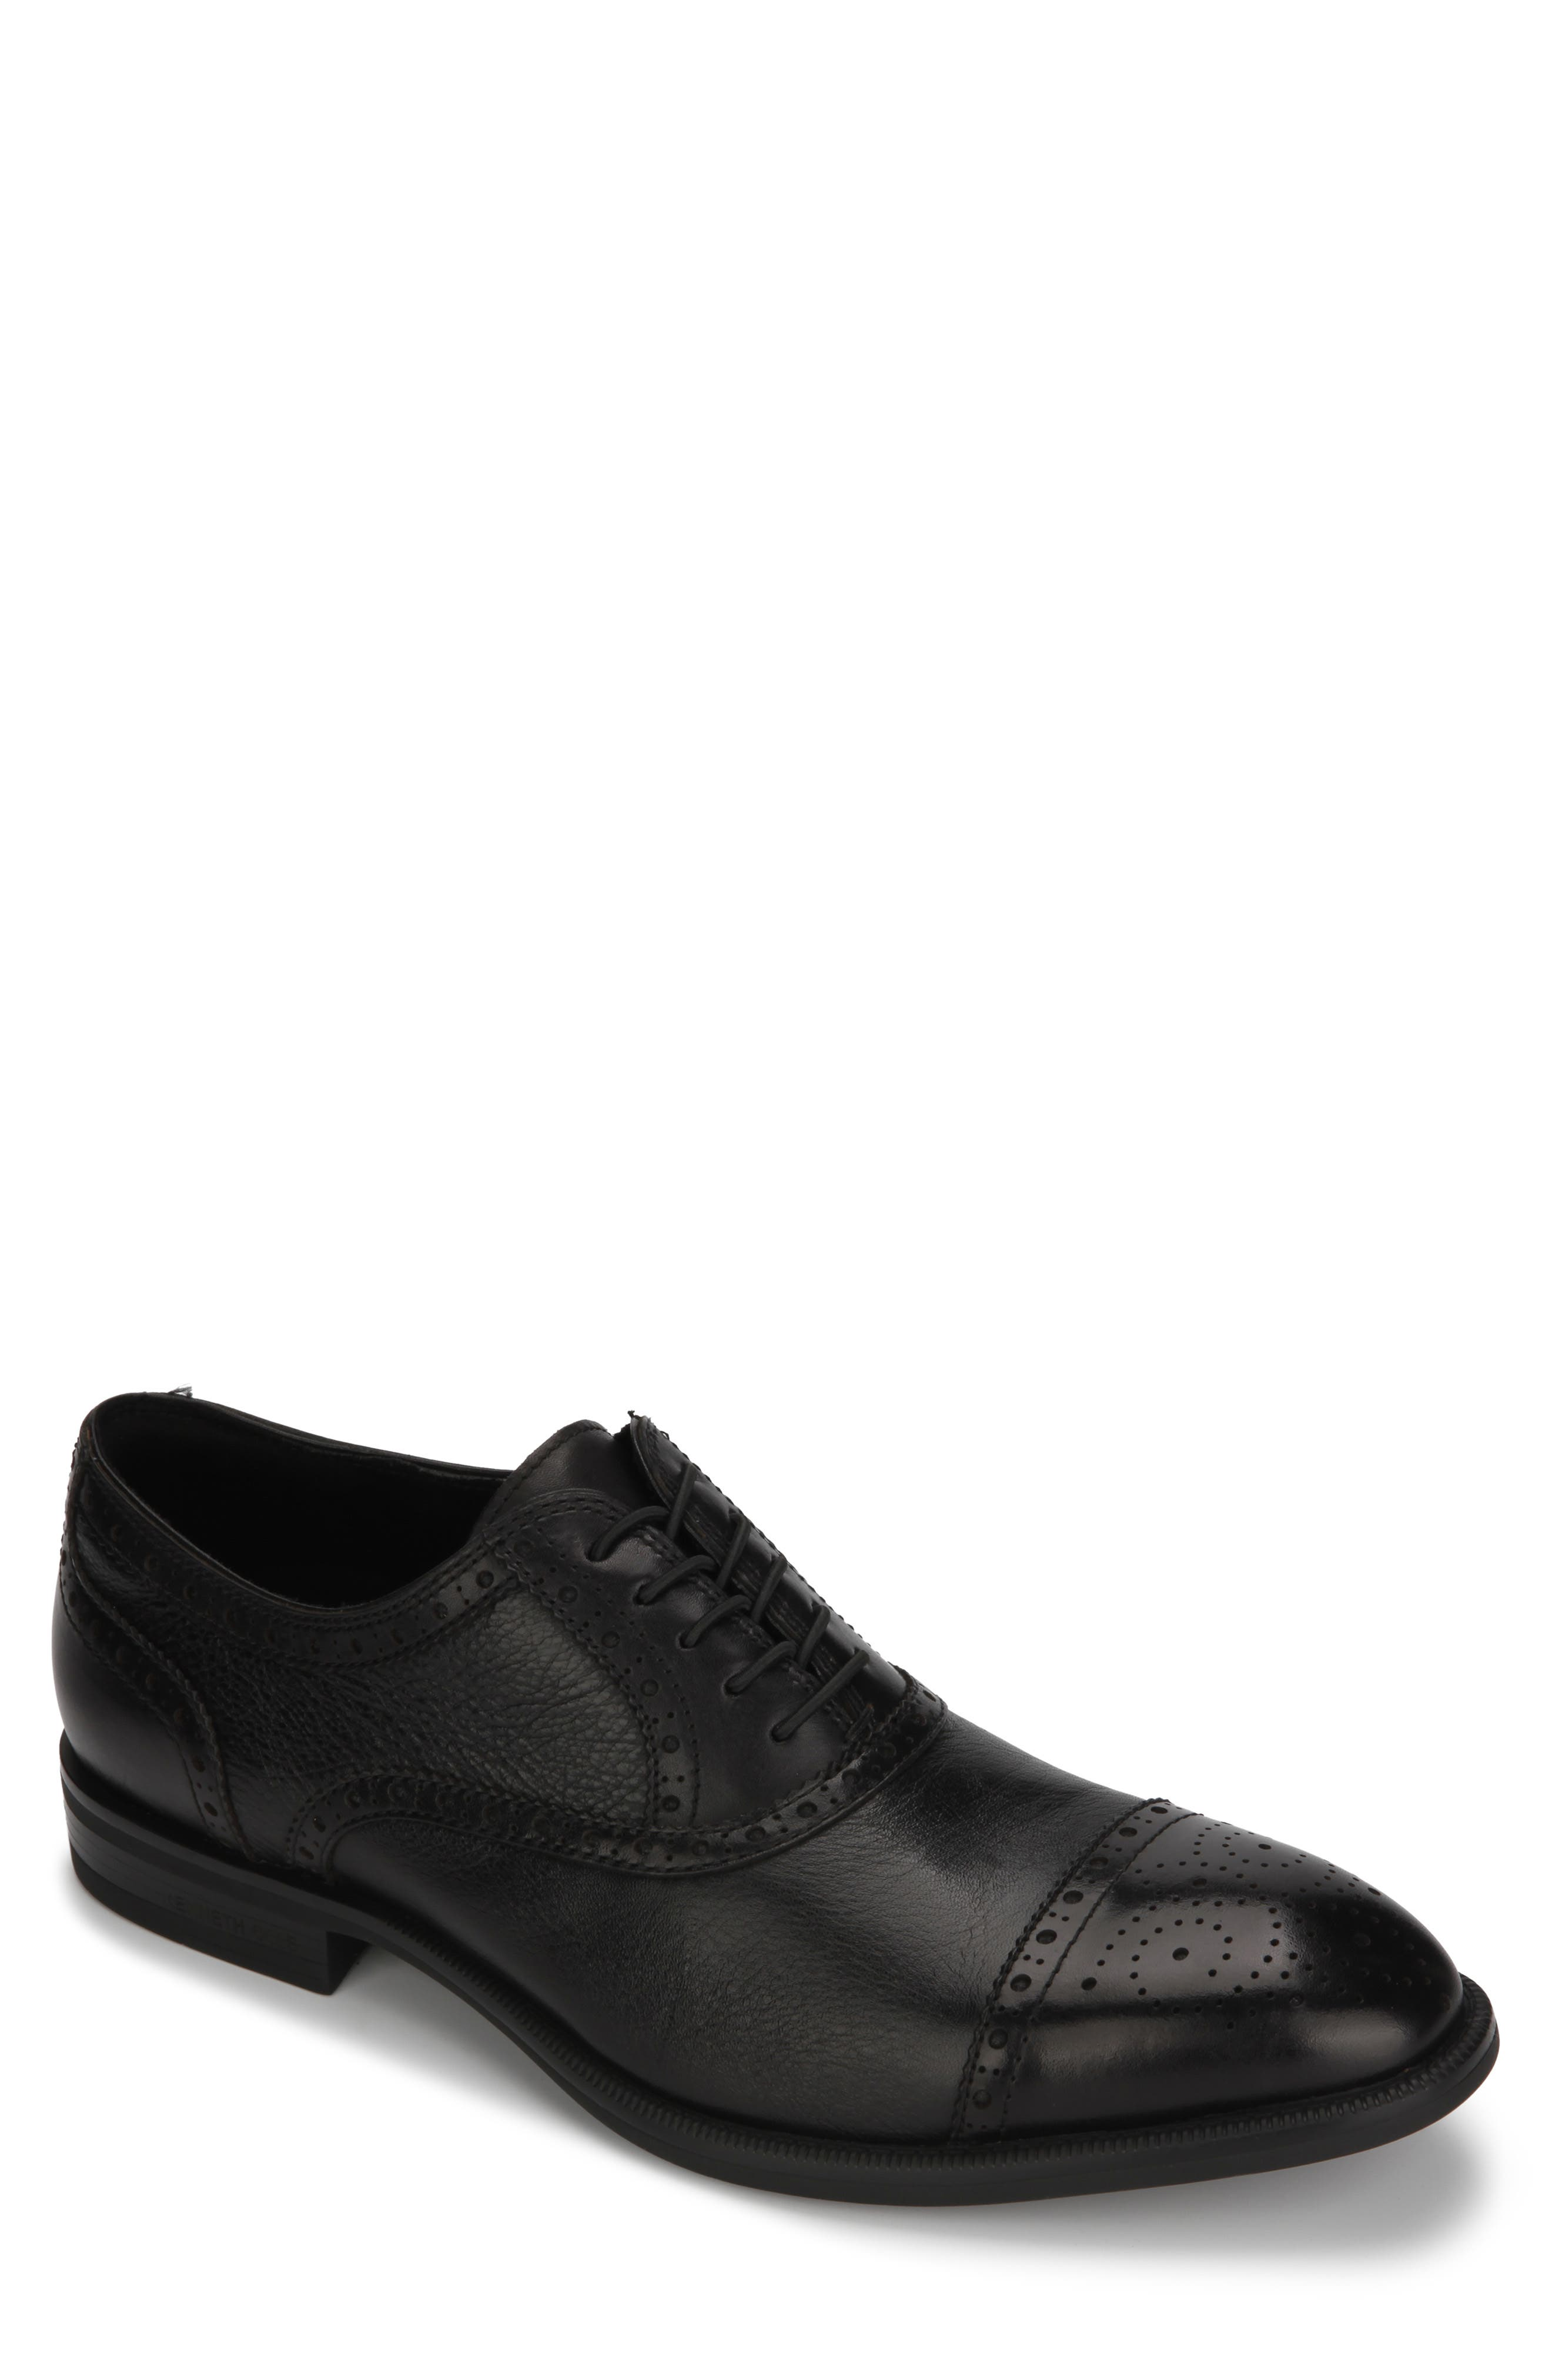 Image of Kenneth Cole New York Perforated Trim Leather Cap Toe Oxford